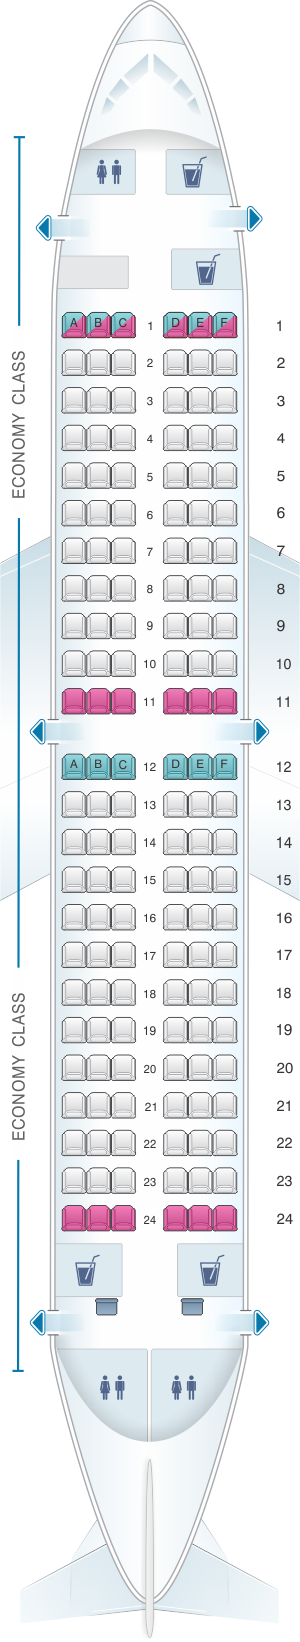 Seat map for Air Serbia Boeing B737 300